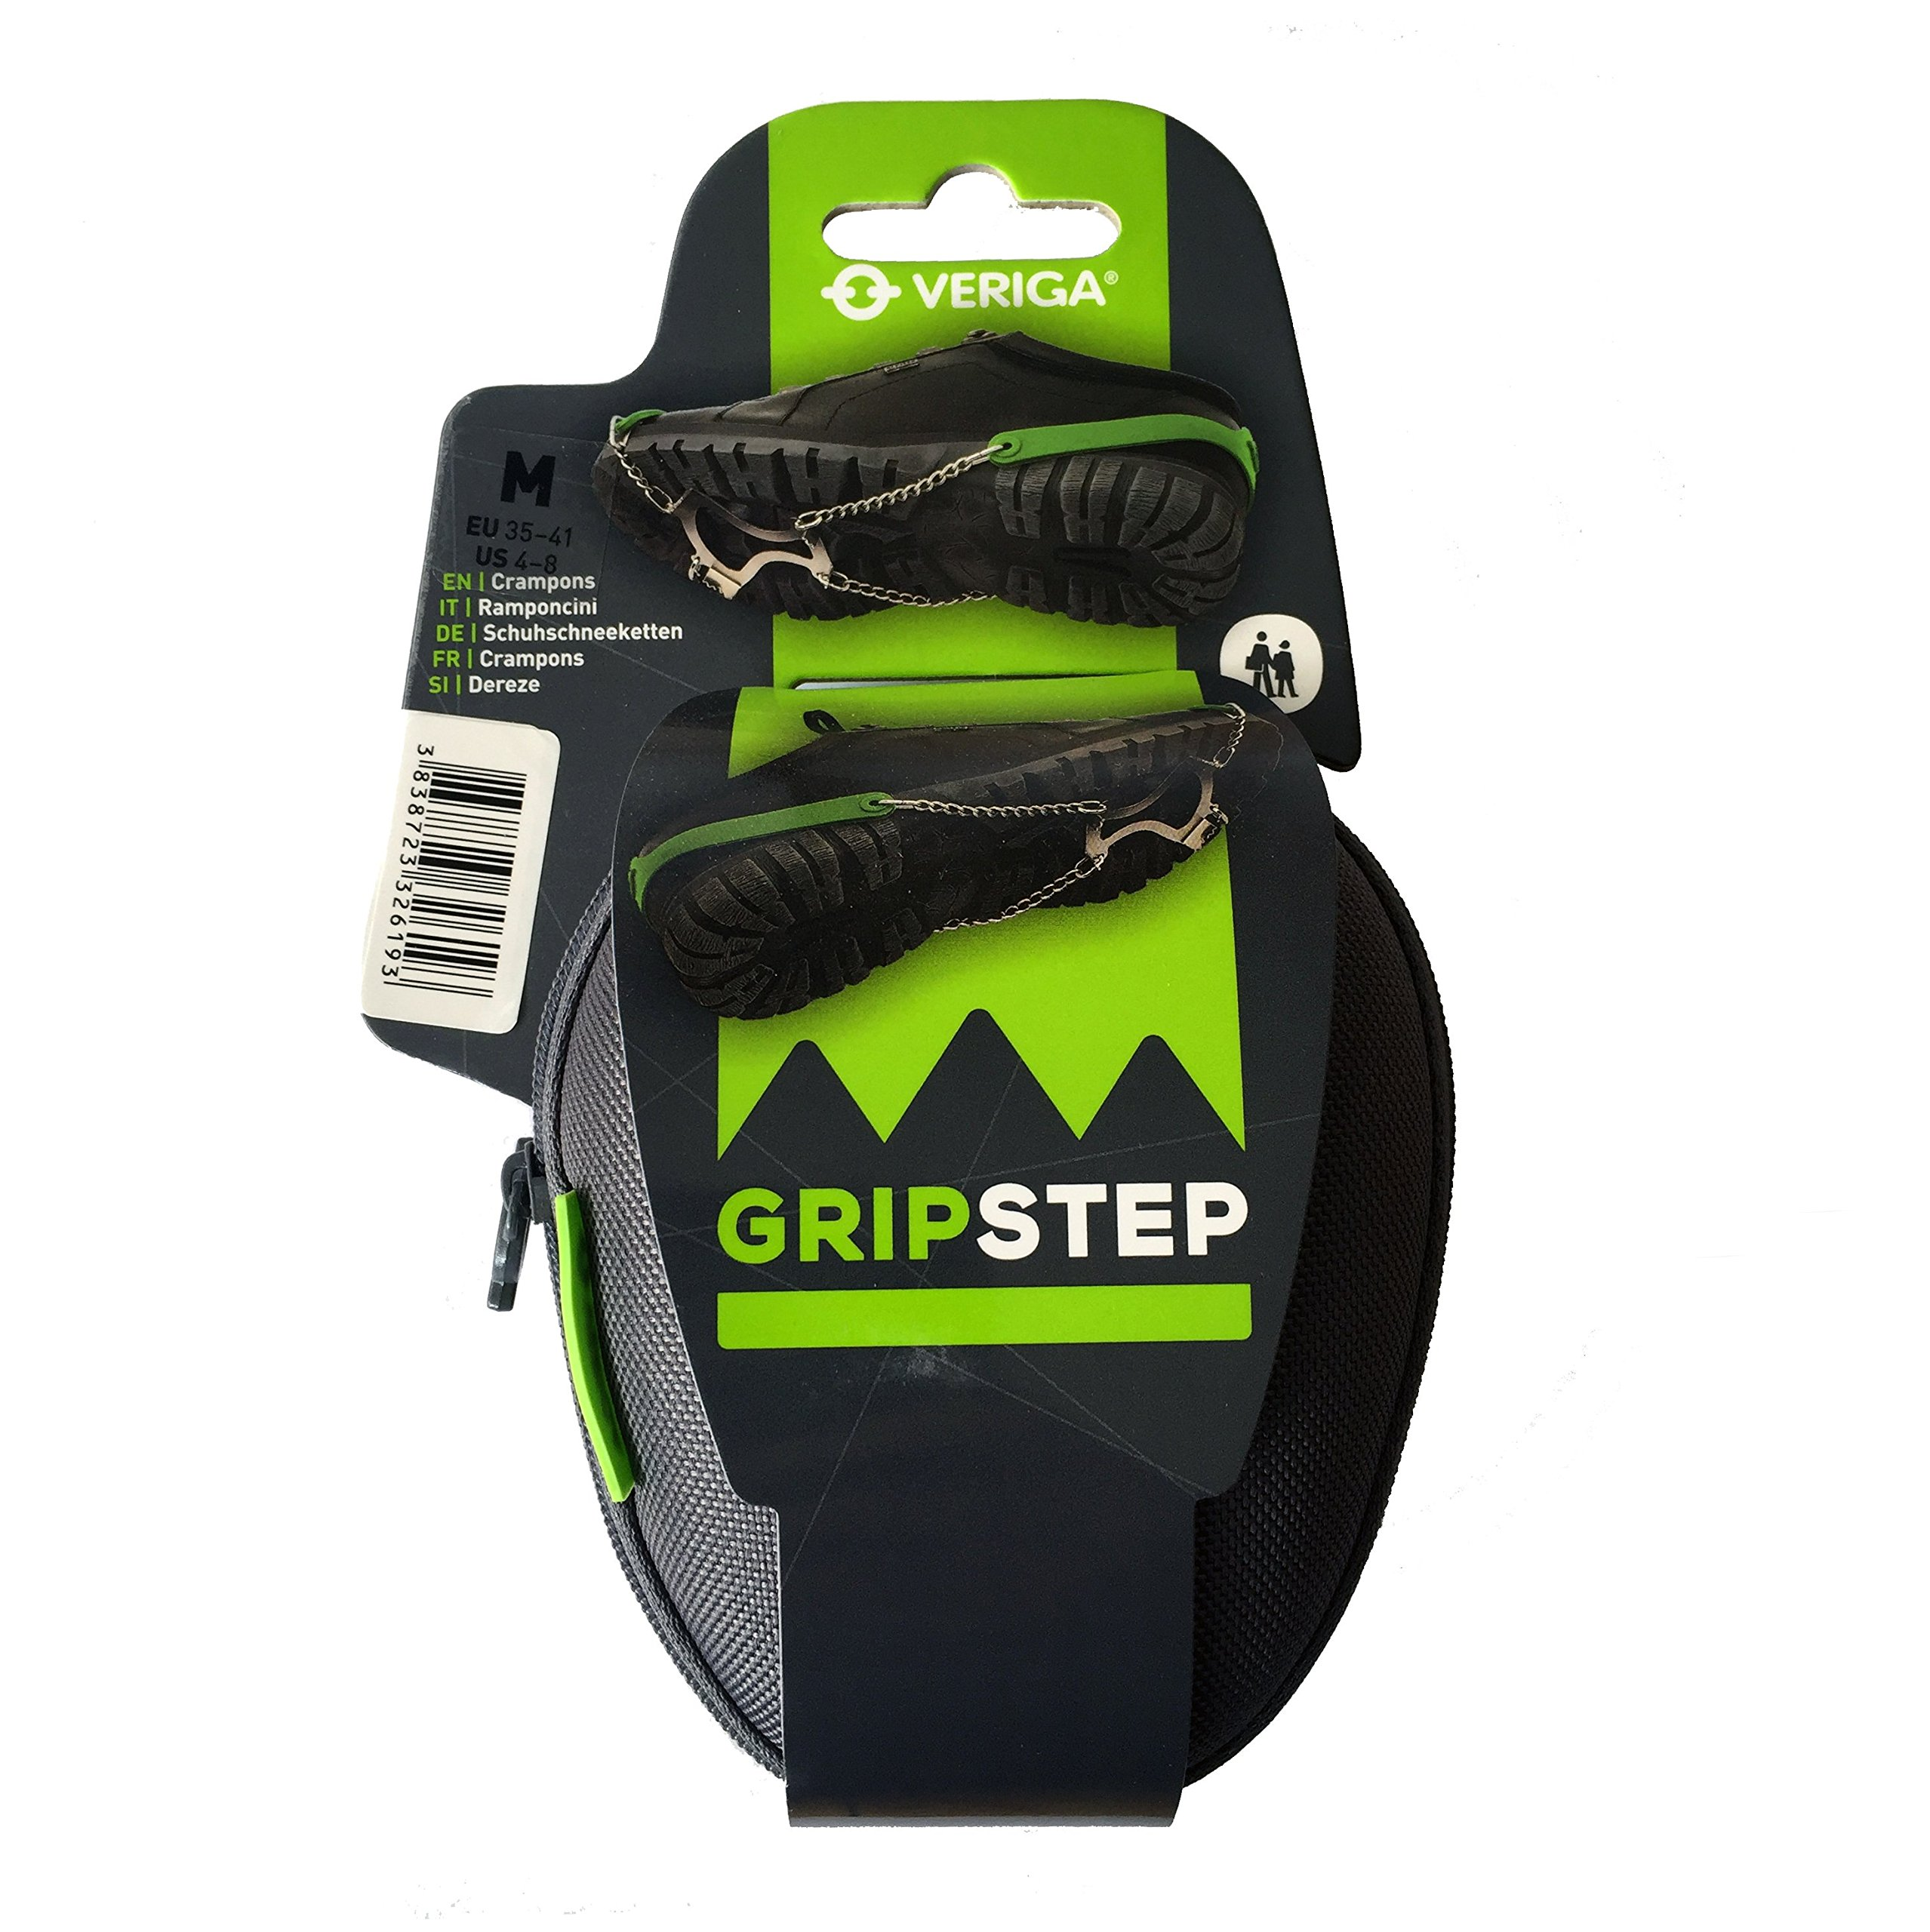 Veriga Gripstep Crampons Ice Traction Cleats, Medium (35-41 EU)